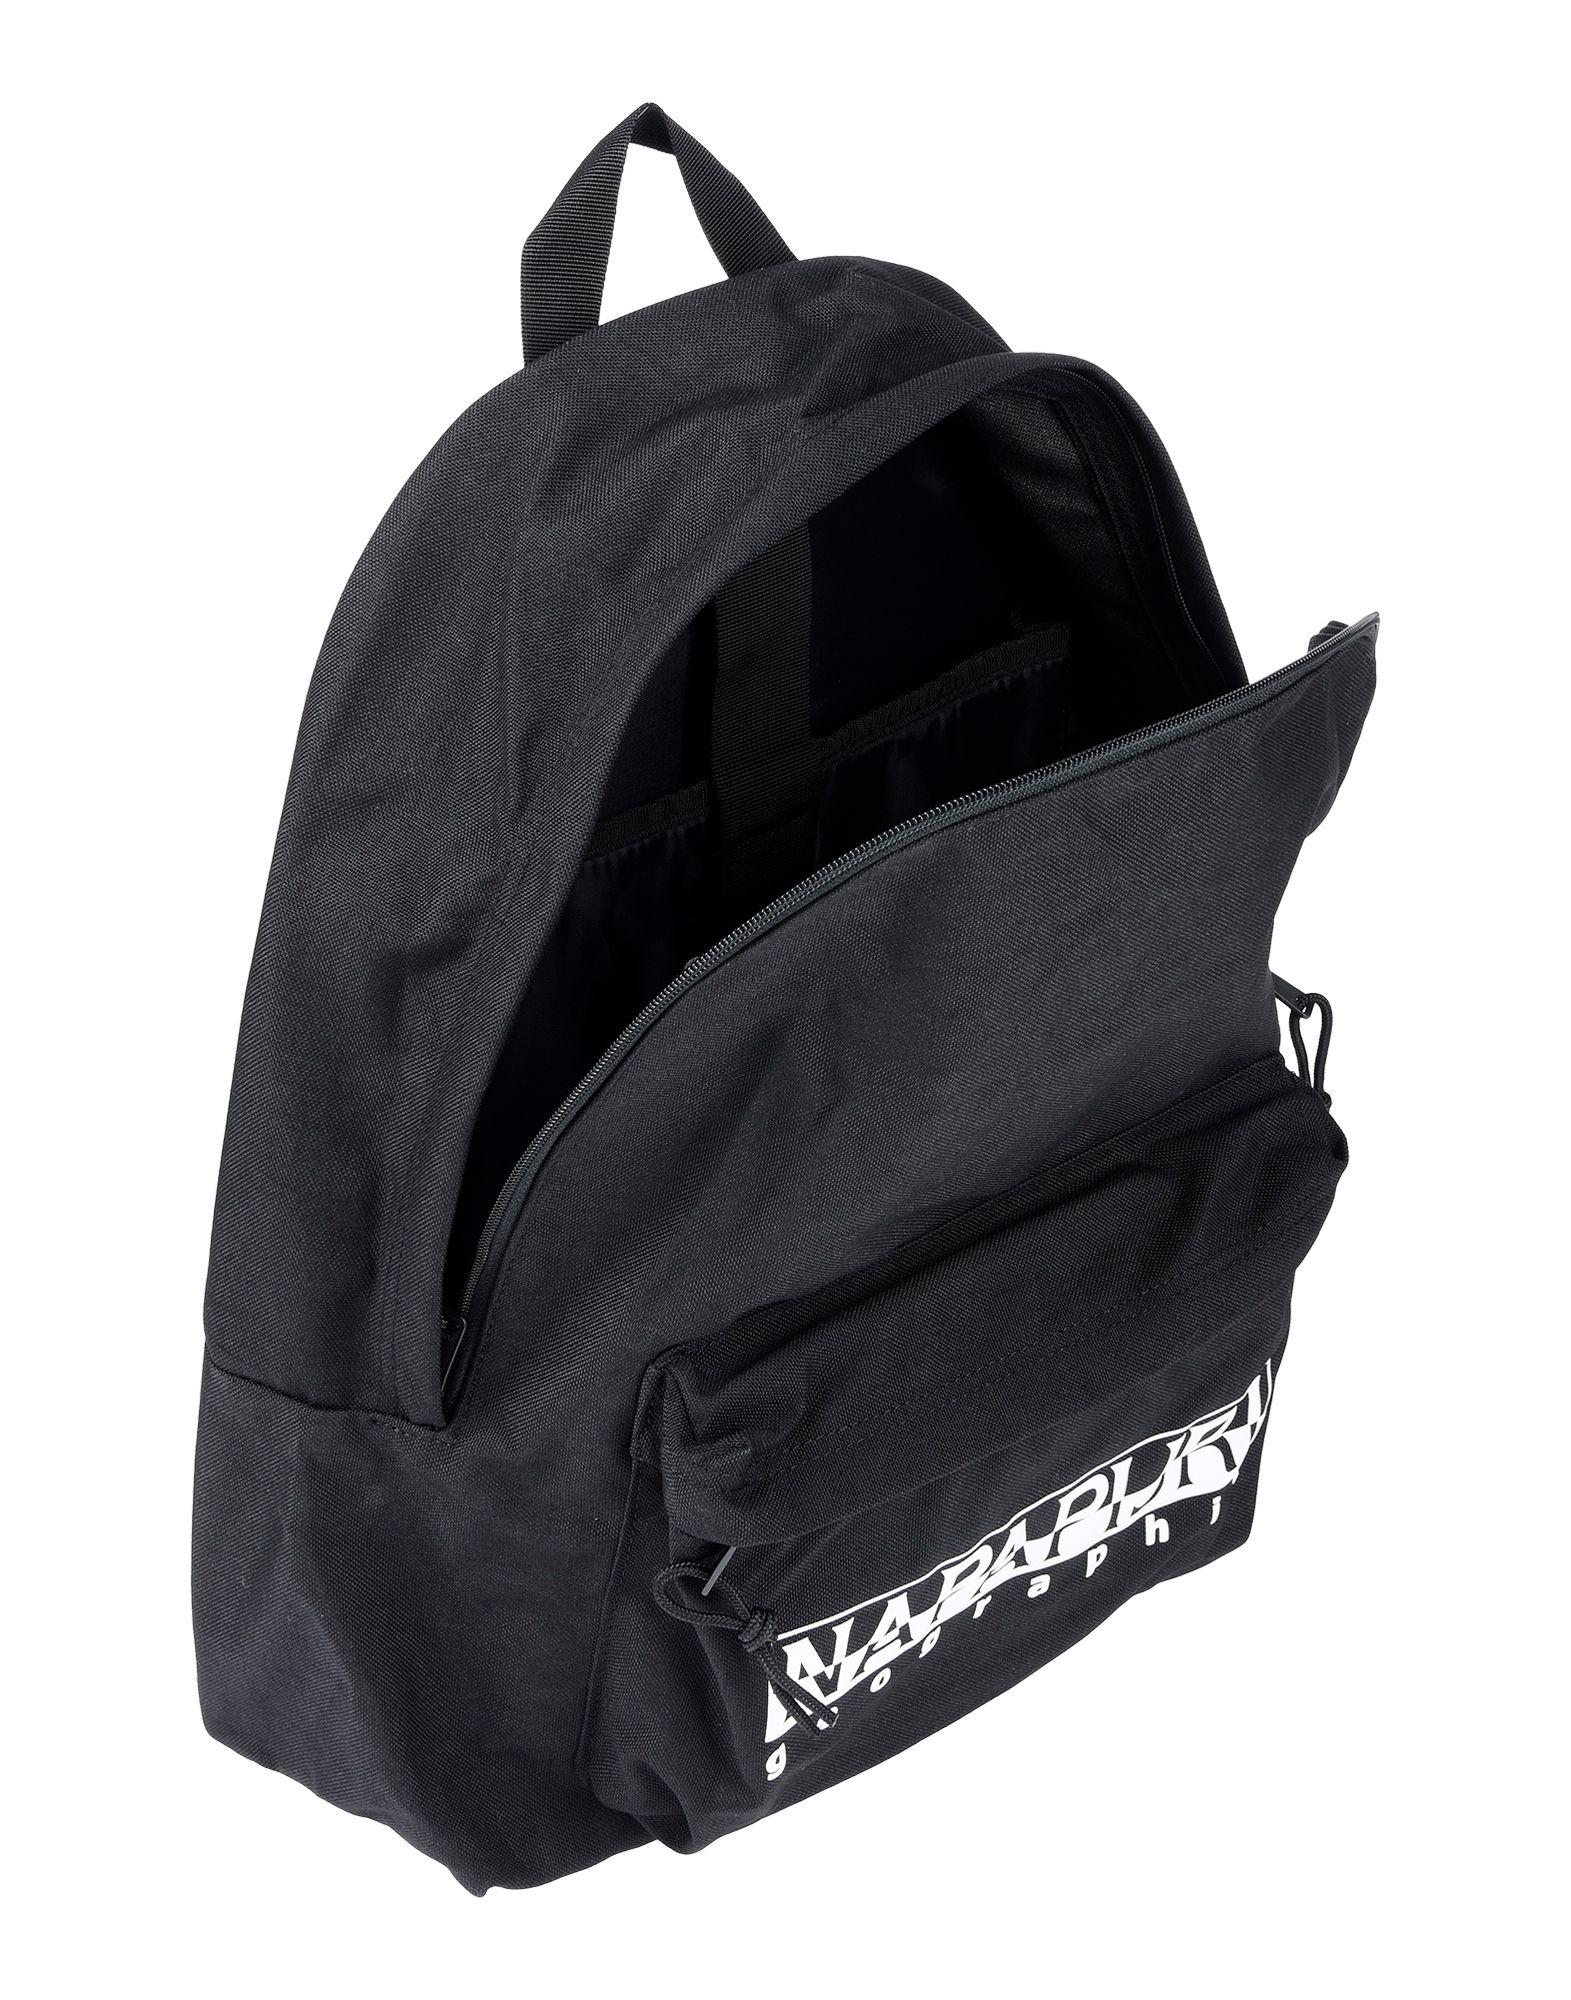 Napapijri Backpacks   Bum Bags in Black for Men - Lyst